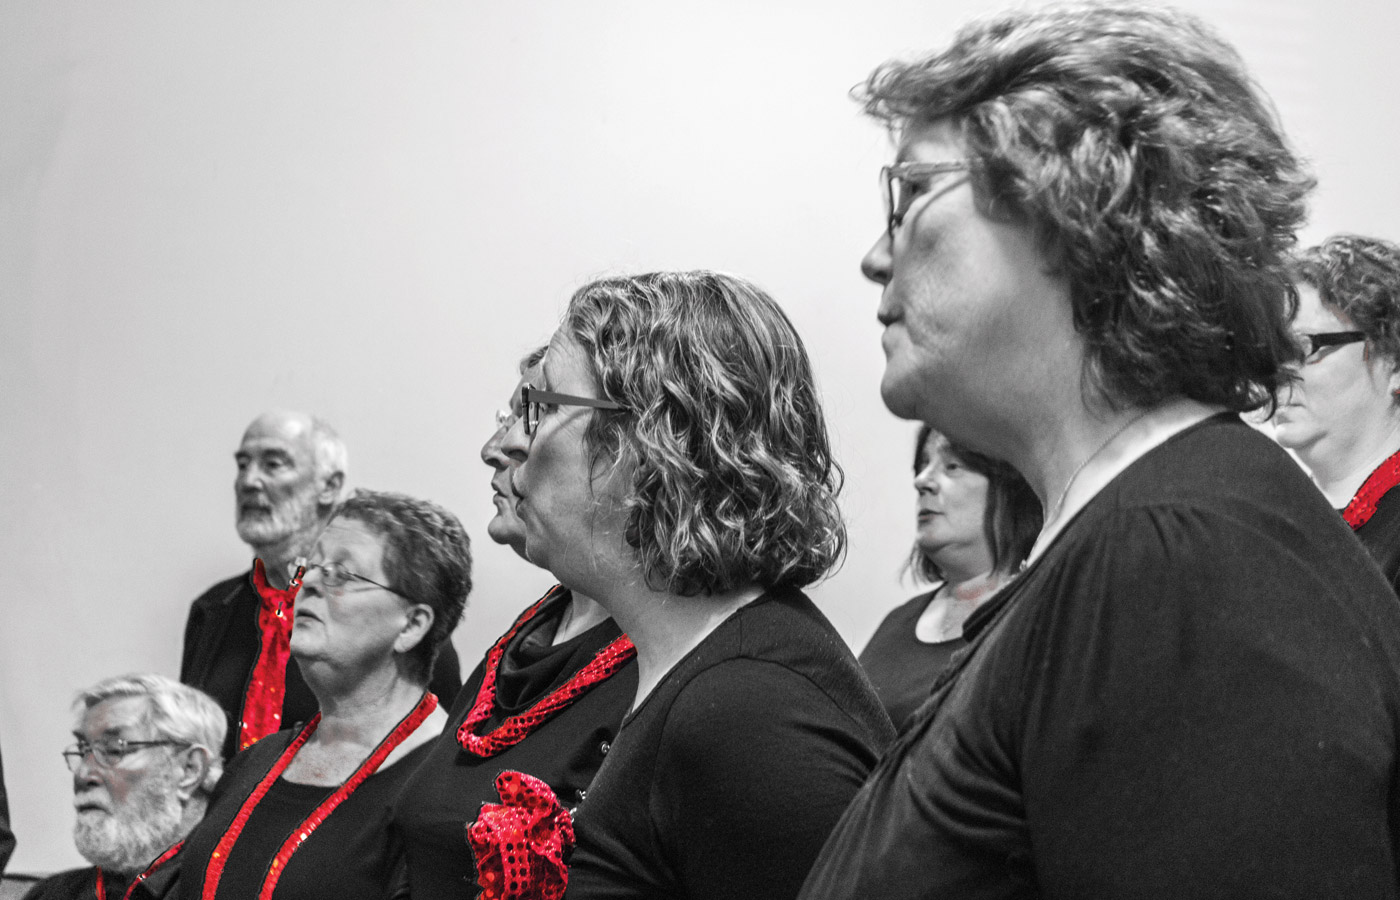 Ill Be there -  Victorian Trades Union Choir